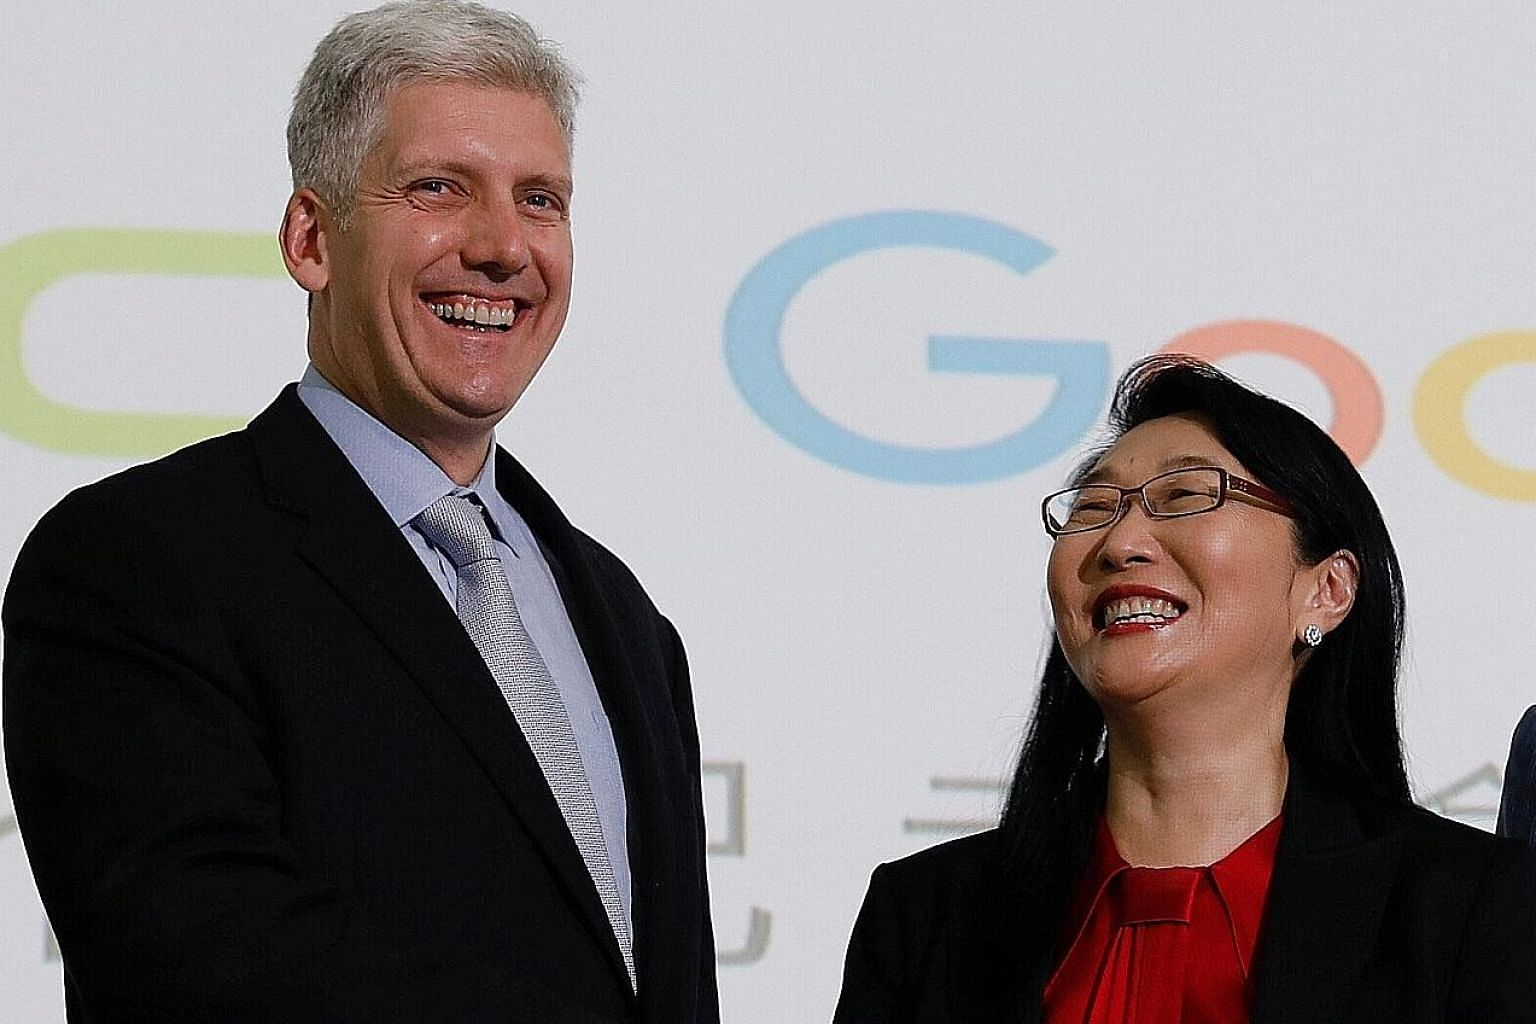 Google hardware executive Rick Osterloh with HTC chief executive Cher Wang at a news conference in Taipei yesterday to announce the search giant's acquisition of HTC's Pixel engineering and design teams for US$1.1 billion (S$1.5 billion).